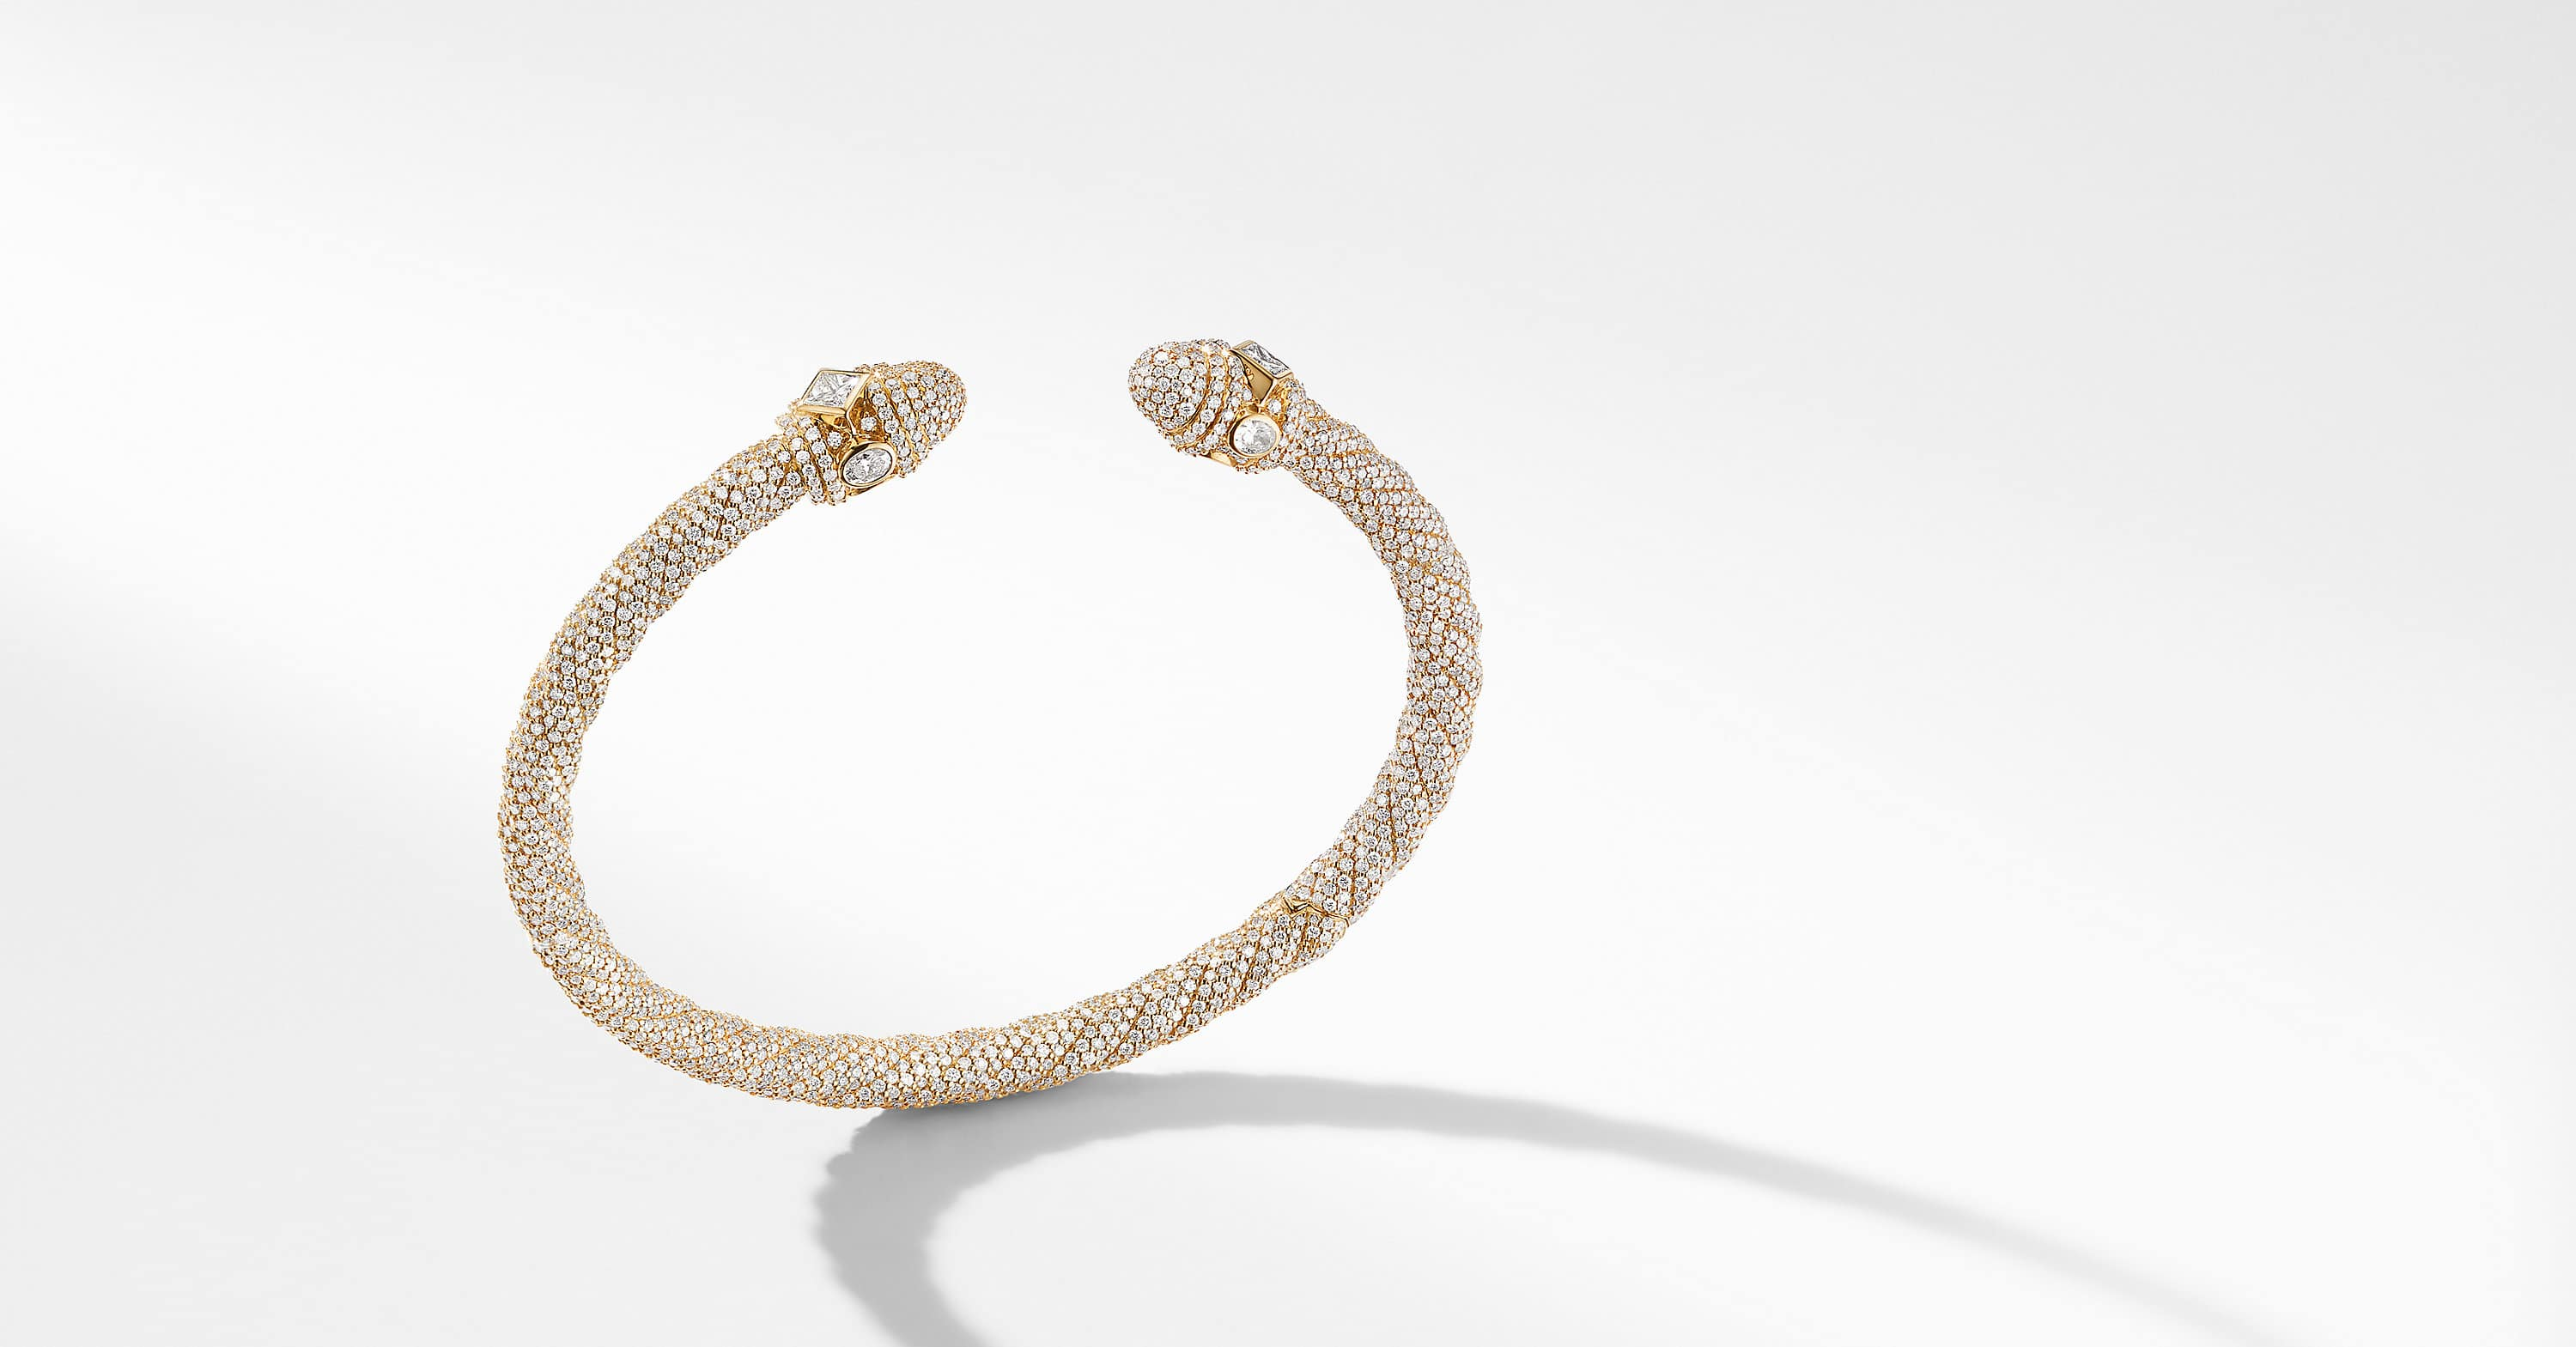 Renaissance Bracelet in 18K Gold with Diamonds, 5mm